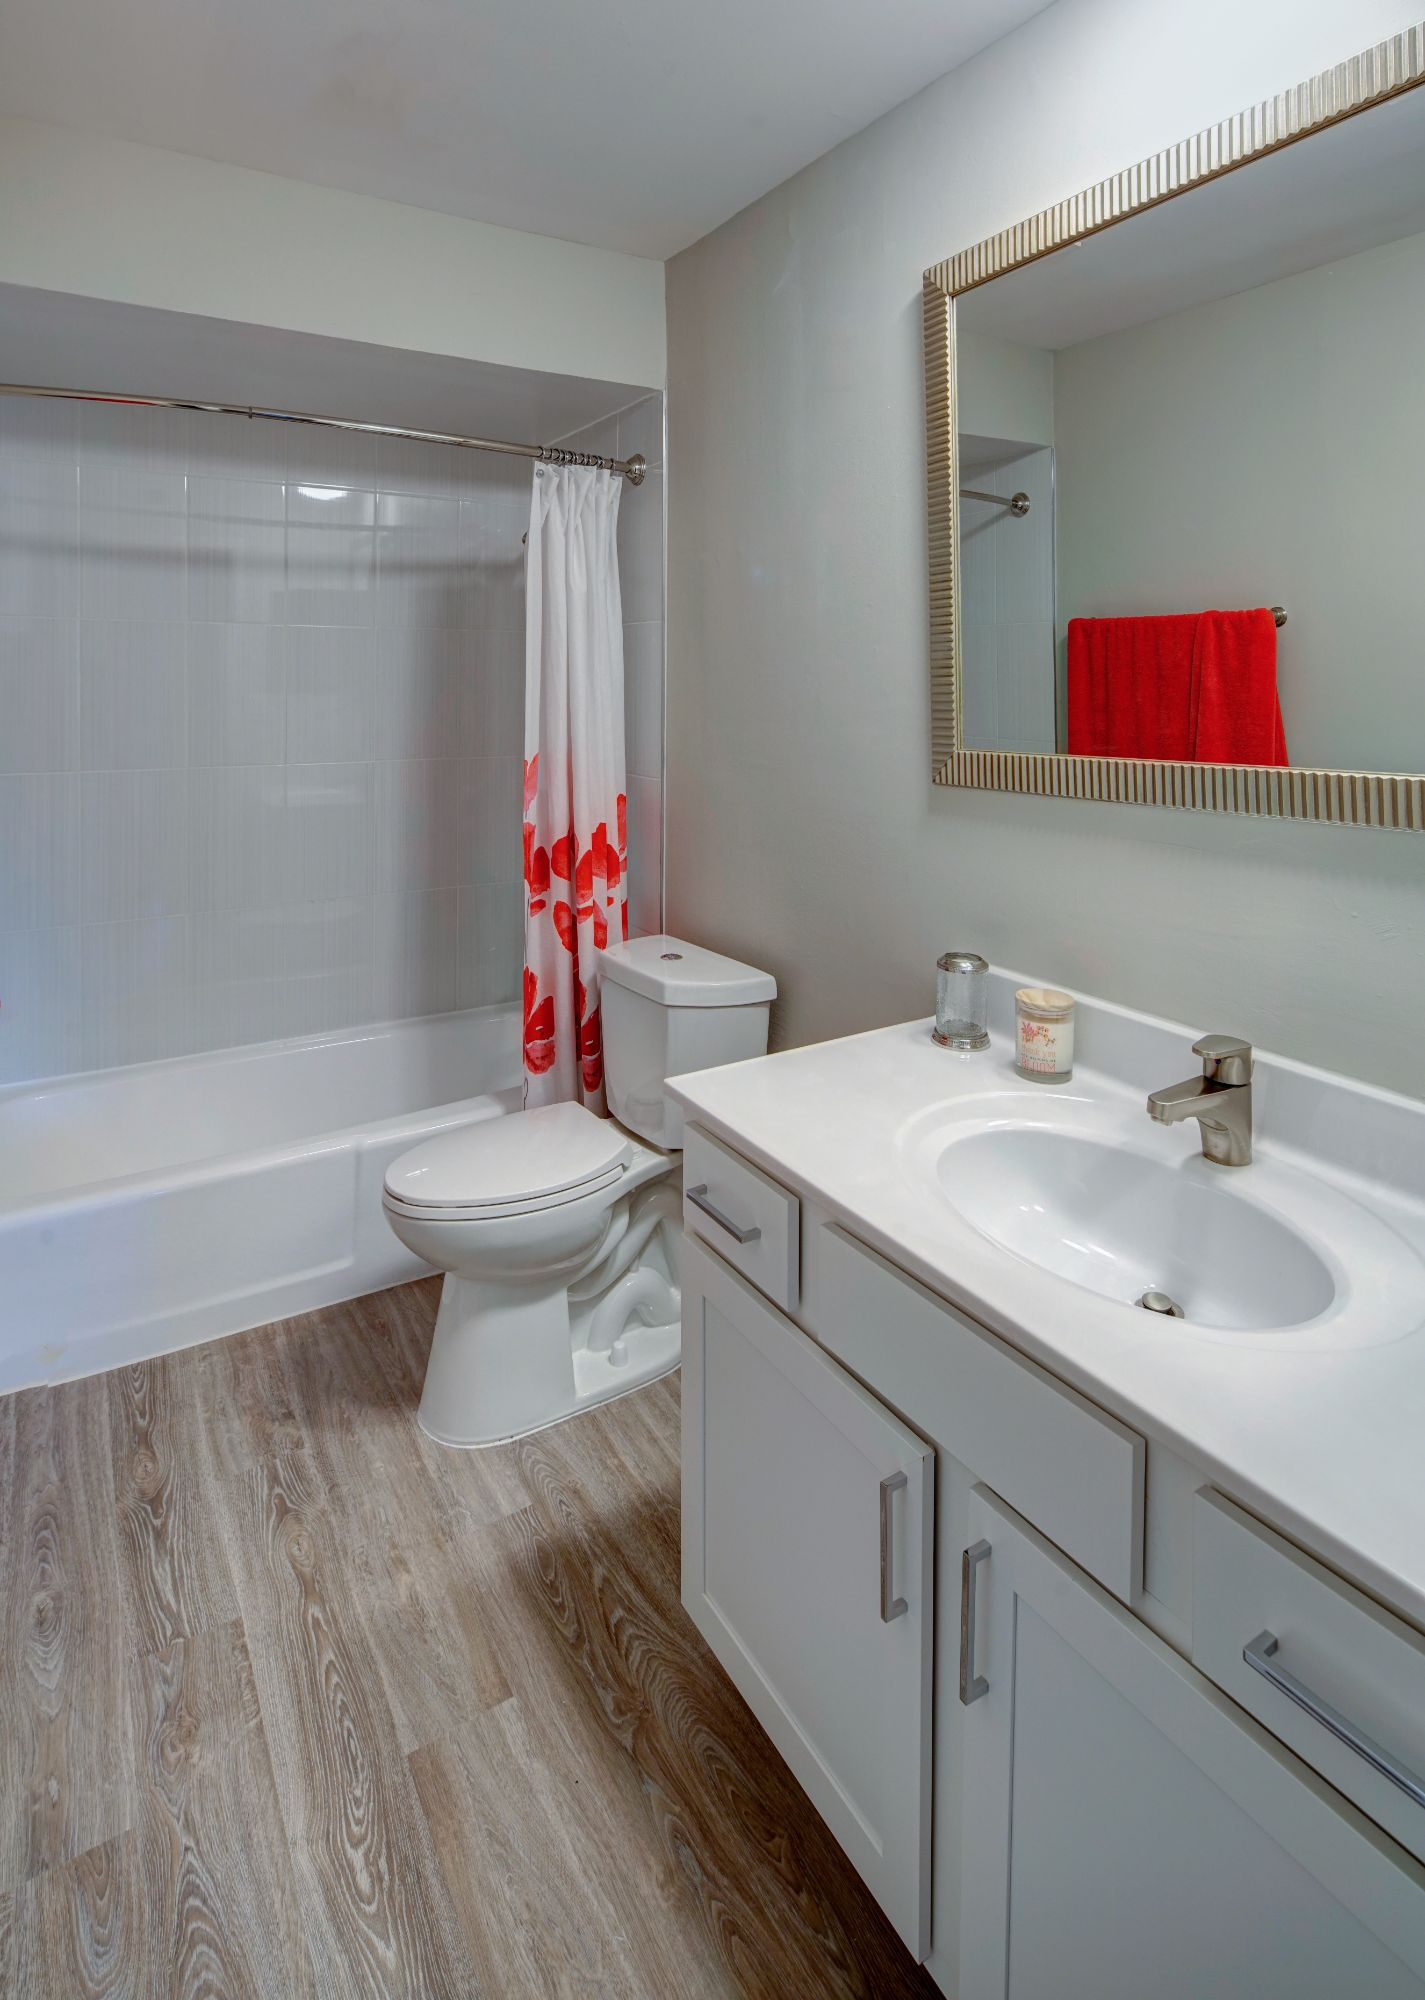 Spacious Bathrooms at Carol Stream Crossing, Illinois, 60188